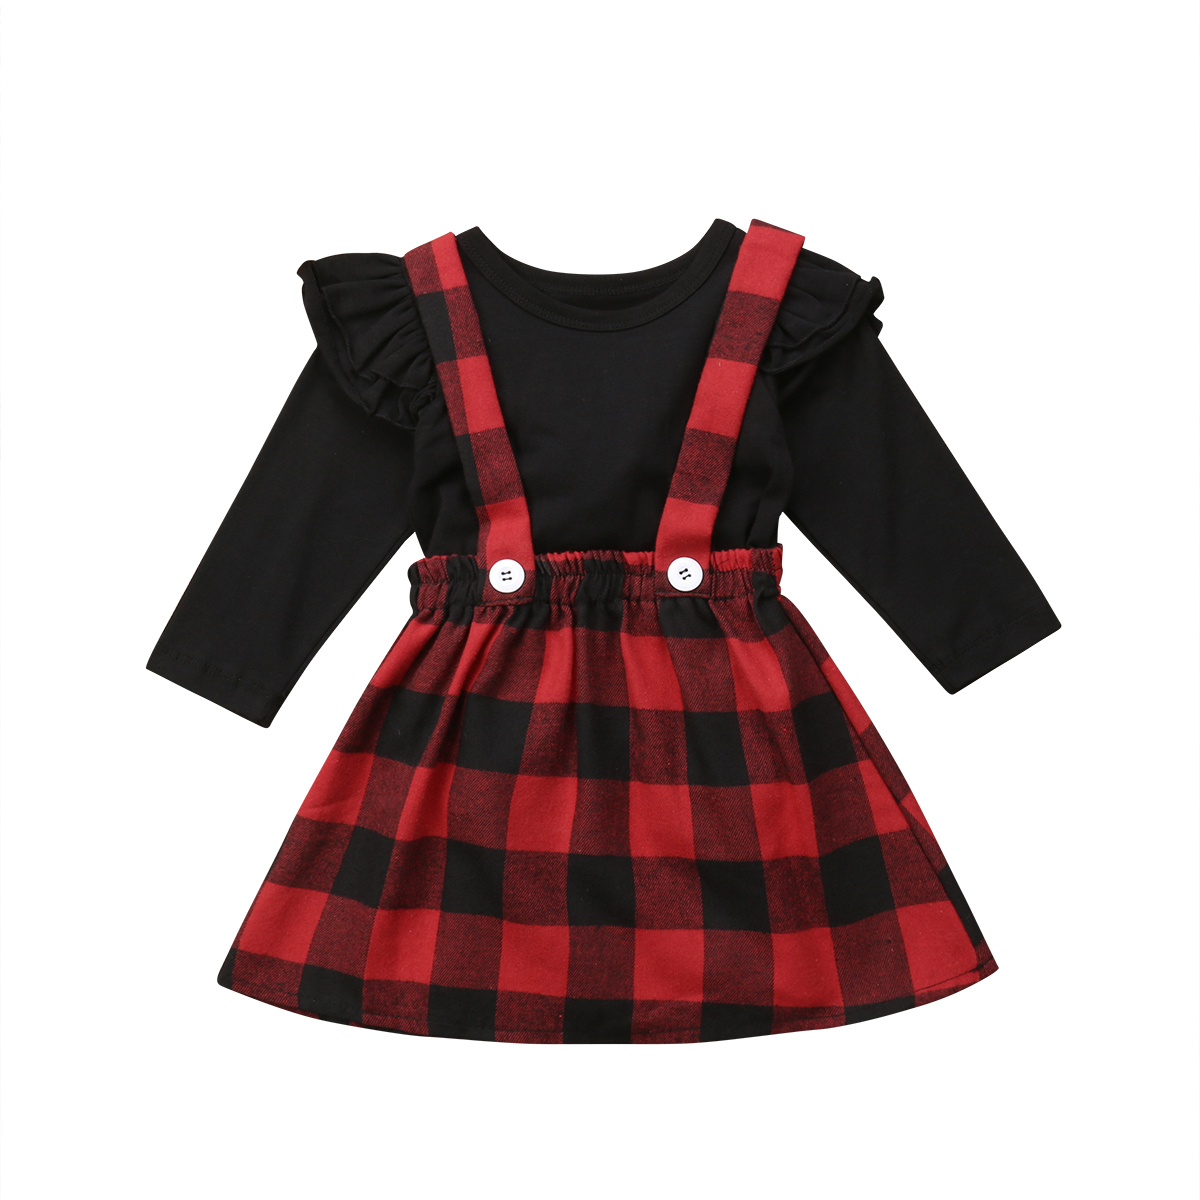 0-4Y Toddler Kids Baby <font><b>Girl</b></font> <font><b>Christmas</b></font> Gift Fly <font><b>Long</b></font> <font><b>Sleeve</b></font> Black T-shirt Tops+<font><b>Red</b></font> Plaid Strap <font><b>Dress</b></font> 2PCS <font><b>Girls</b></font> Clothing Set image